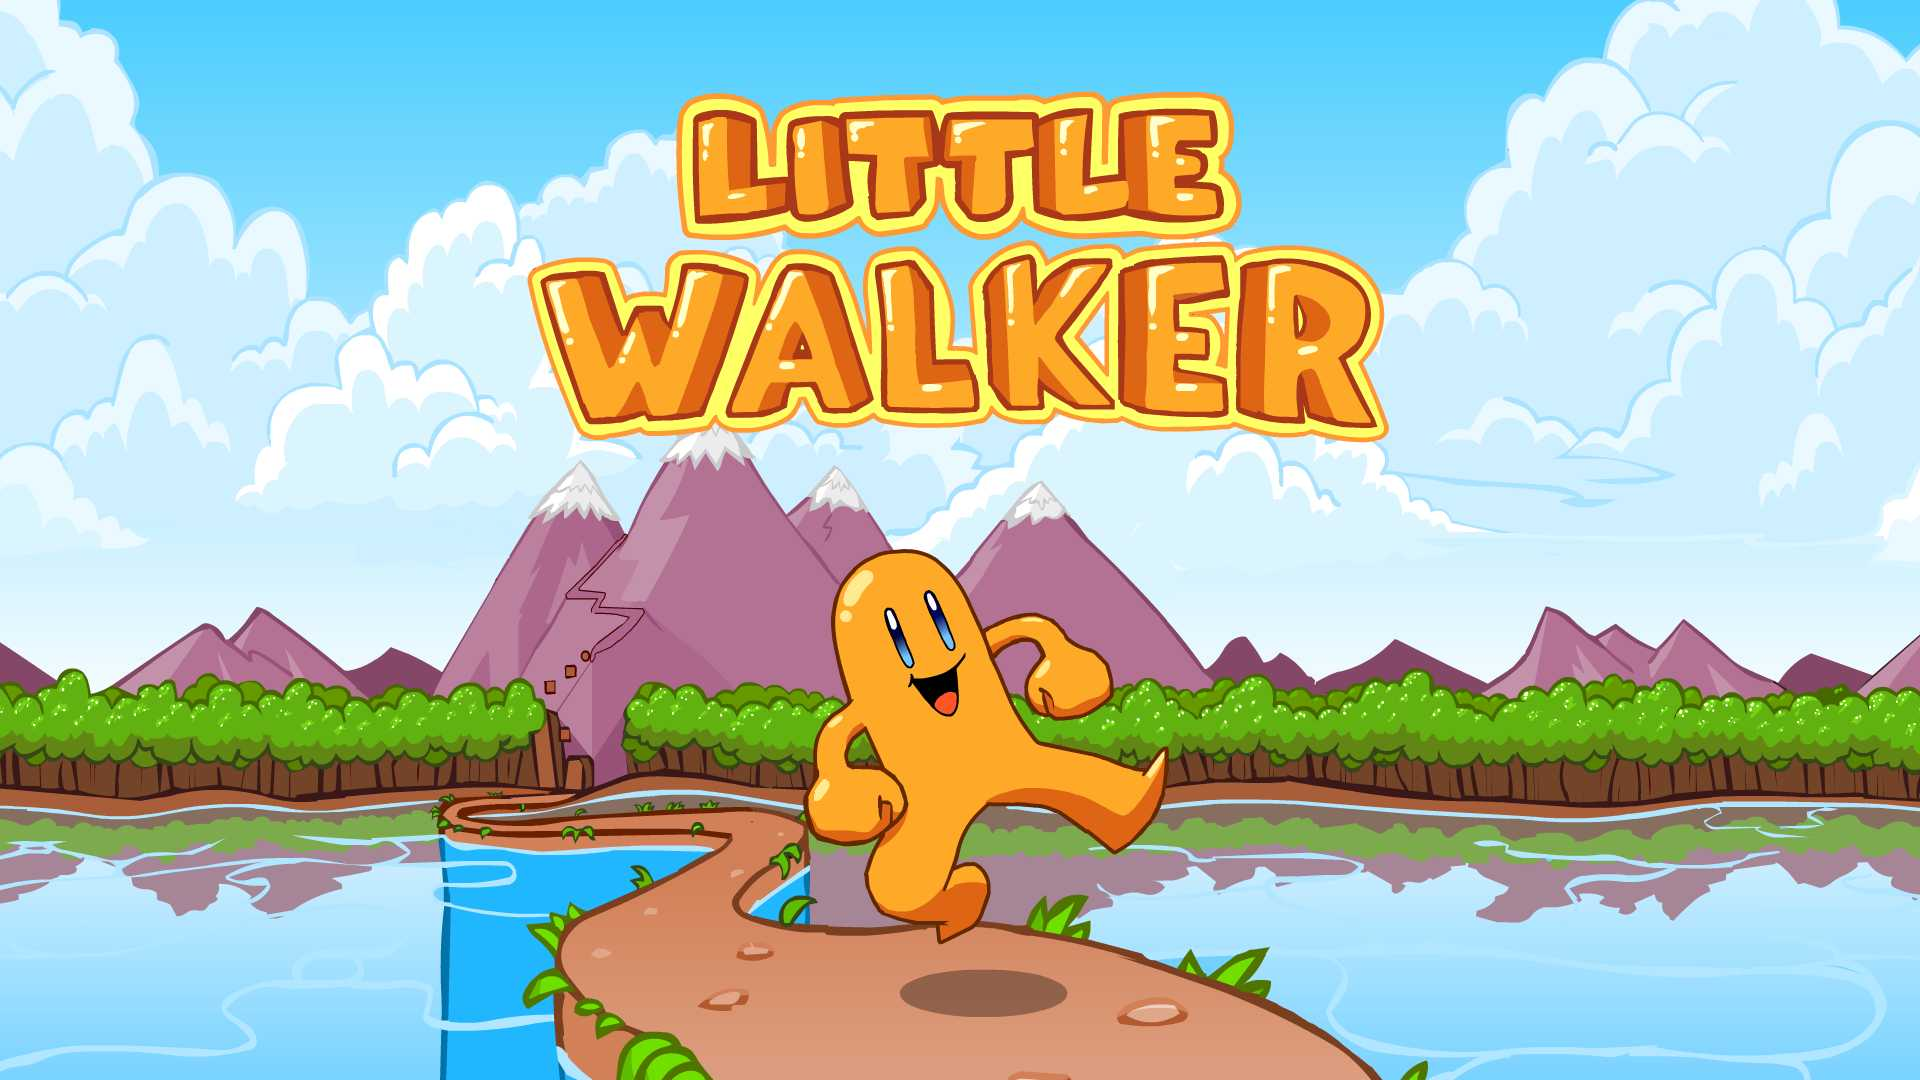 Steam card exchange showcase little walker card 2 of 5artwork little walker altavistaventures Images